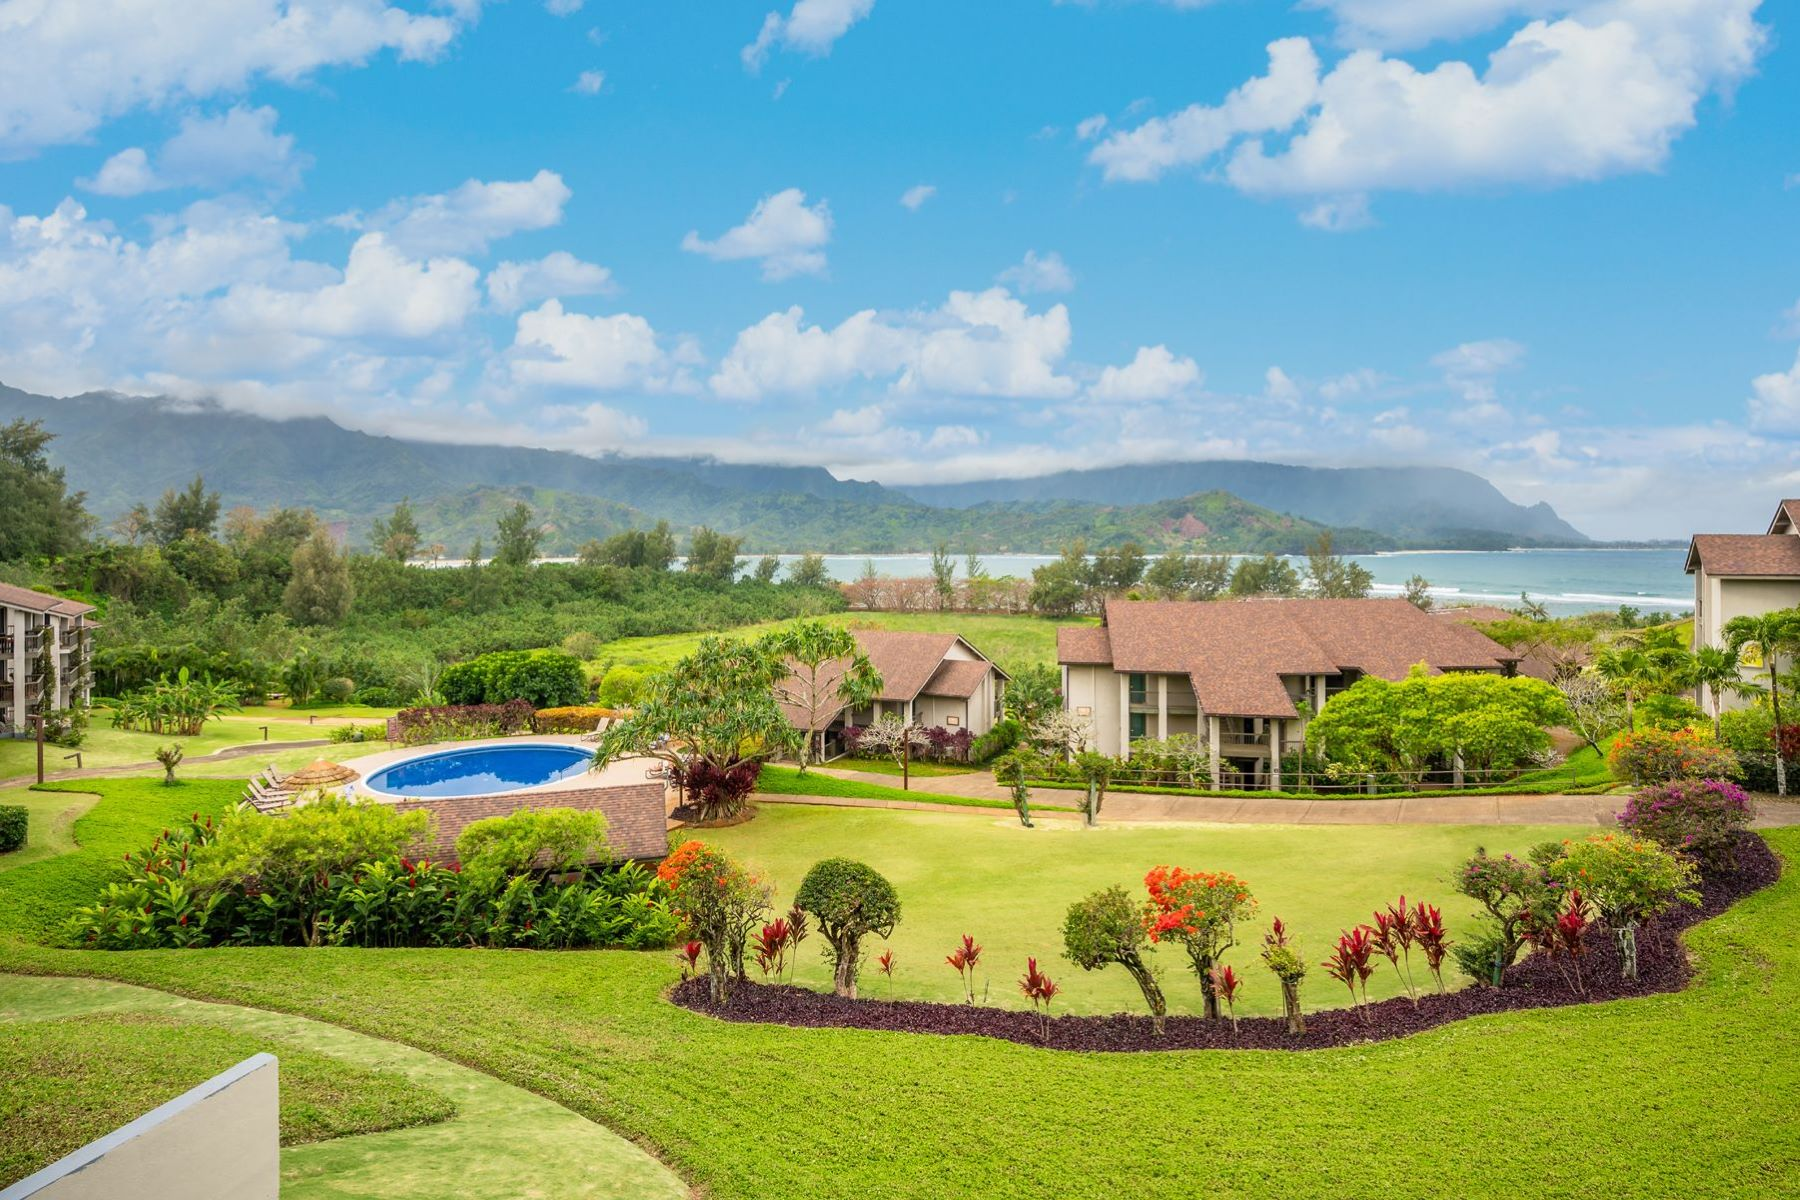 Condominiums for Sale at 5380 HONOIKI RD #L28 PRINCEVILLE, HI 96722 5380 HONOIKI RD #L28 Princeville, Hawaii 96722 United States